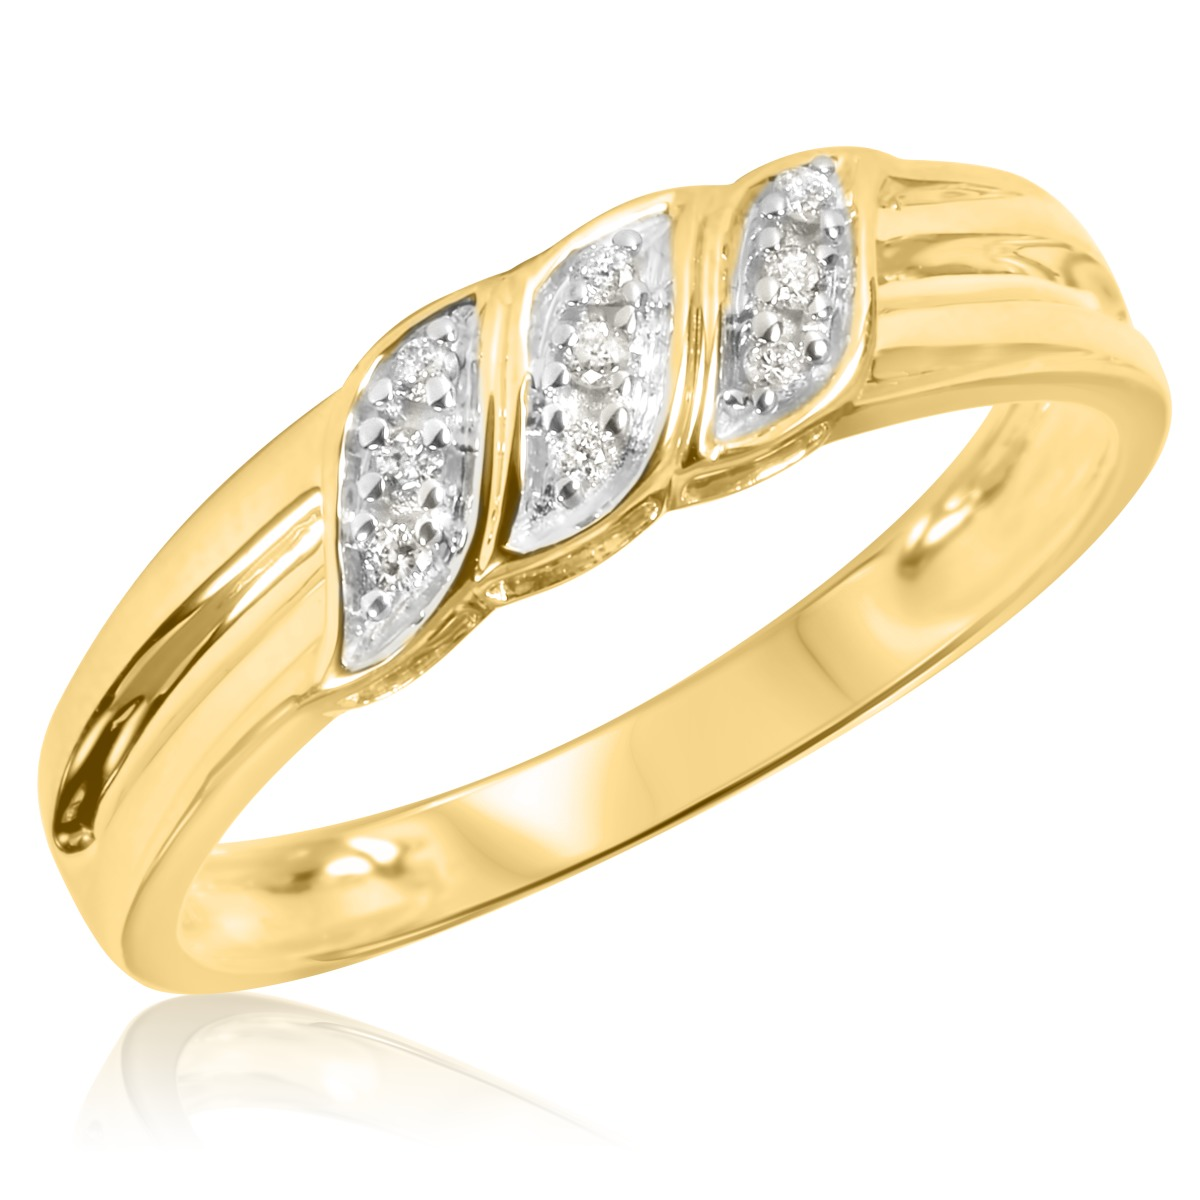 1 10 carat t w diamond men 39 s wedding ring 14k yellow gold. Black Bedroom Furniture Sets. Home Design Ideas